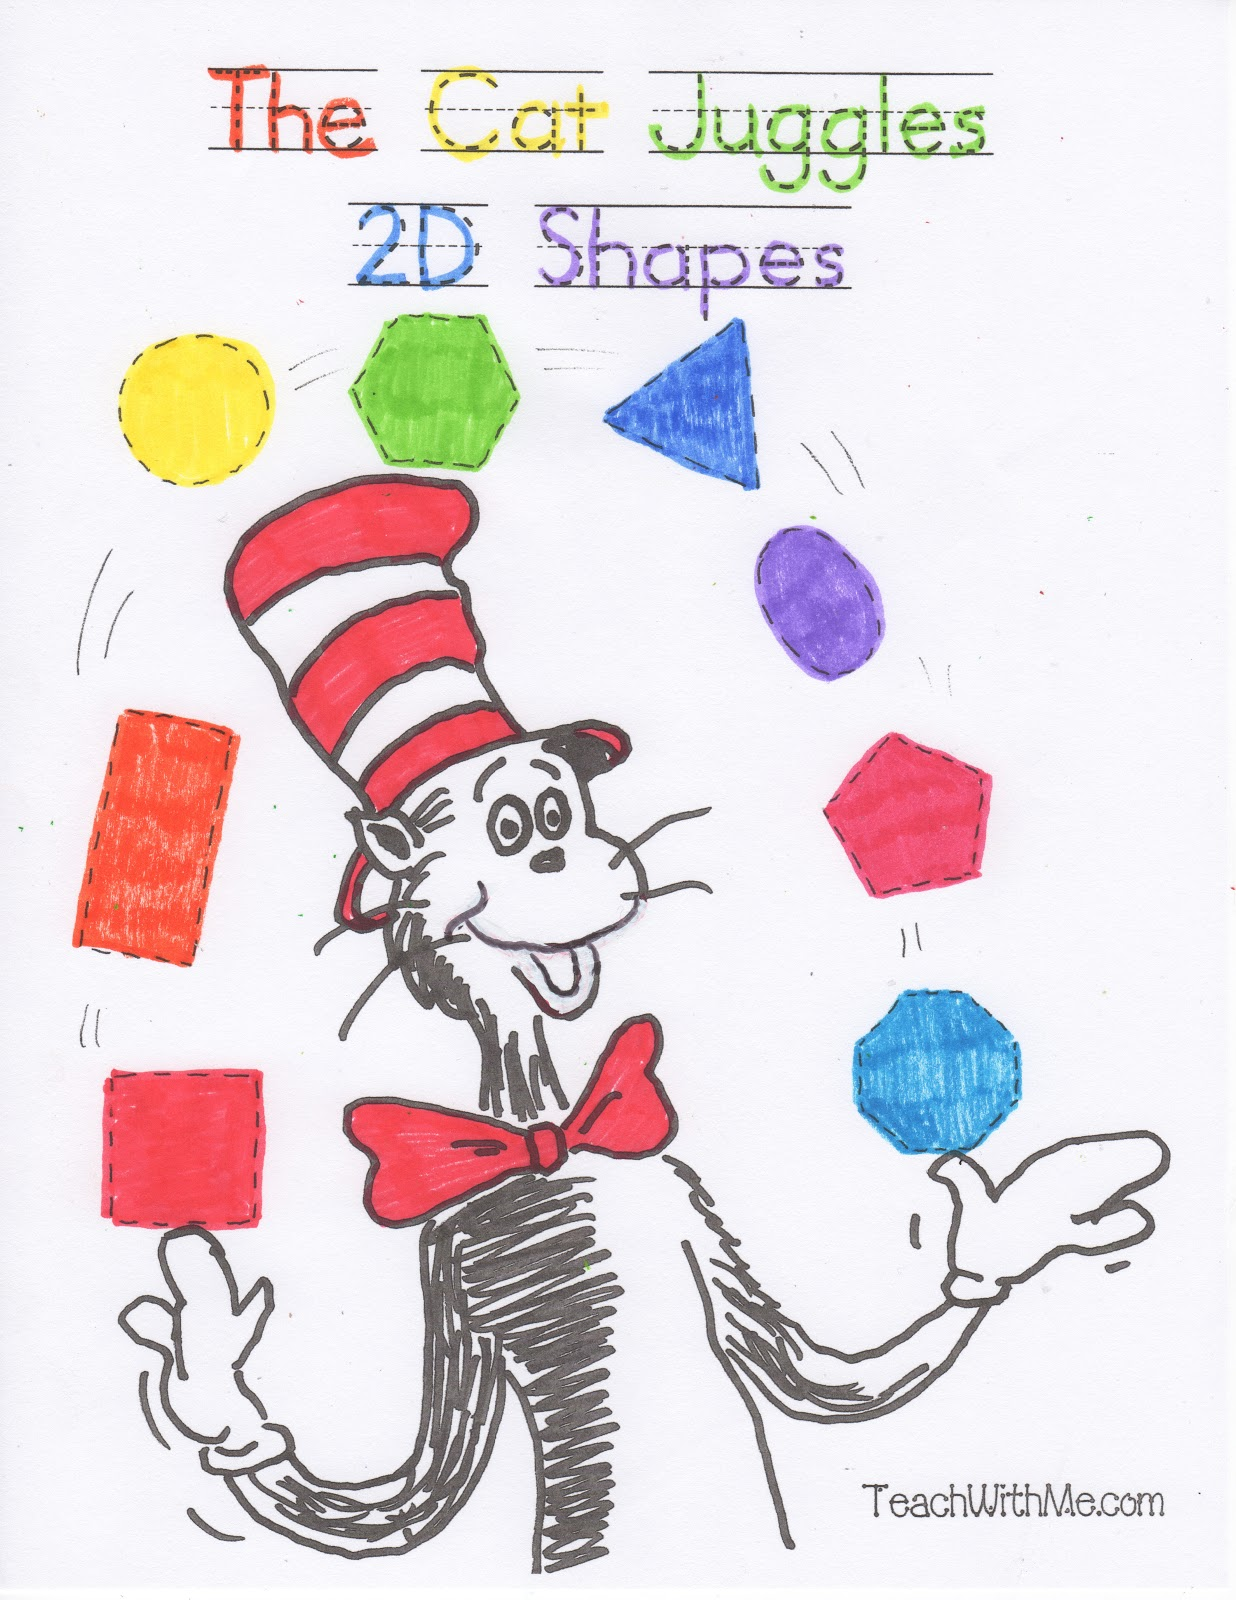 2d Shapes Worksheet Way to review 2d shapes,